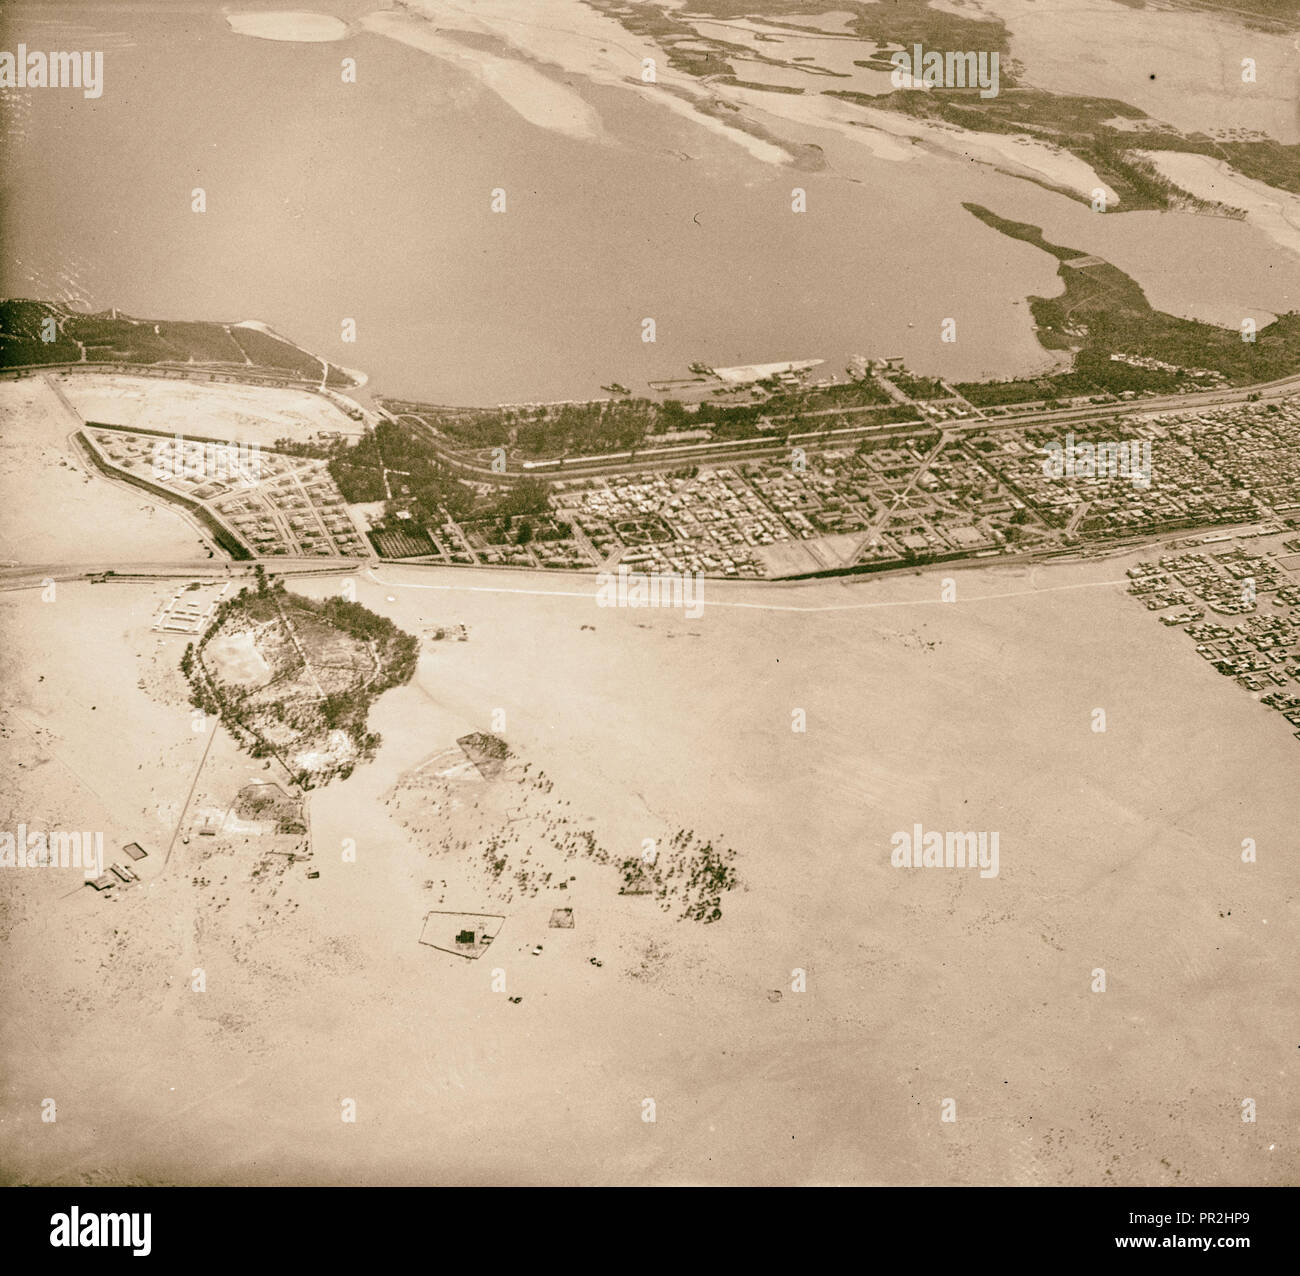 Aerial views, Alexandria? etc. 1910, Egypt, Alexandria - Stock Image